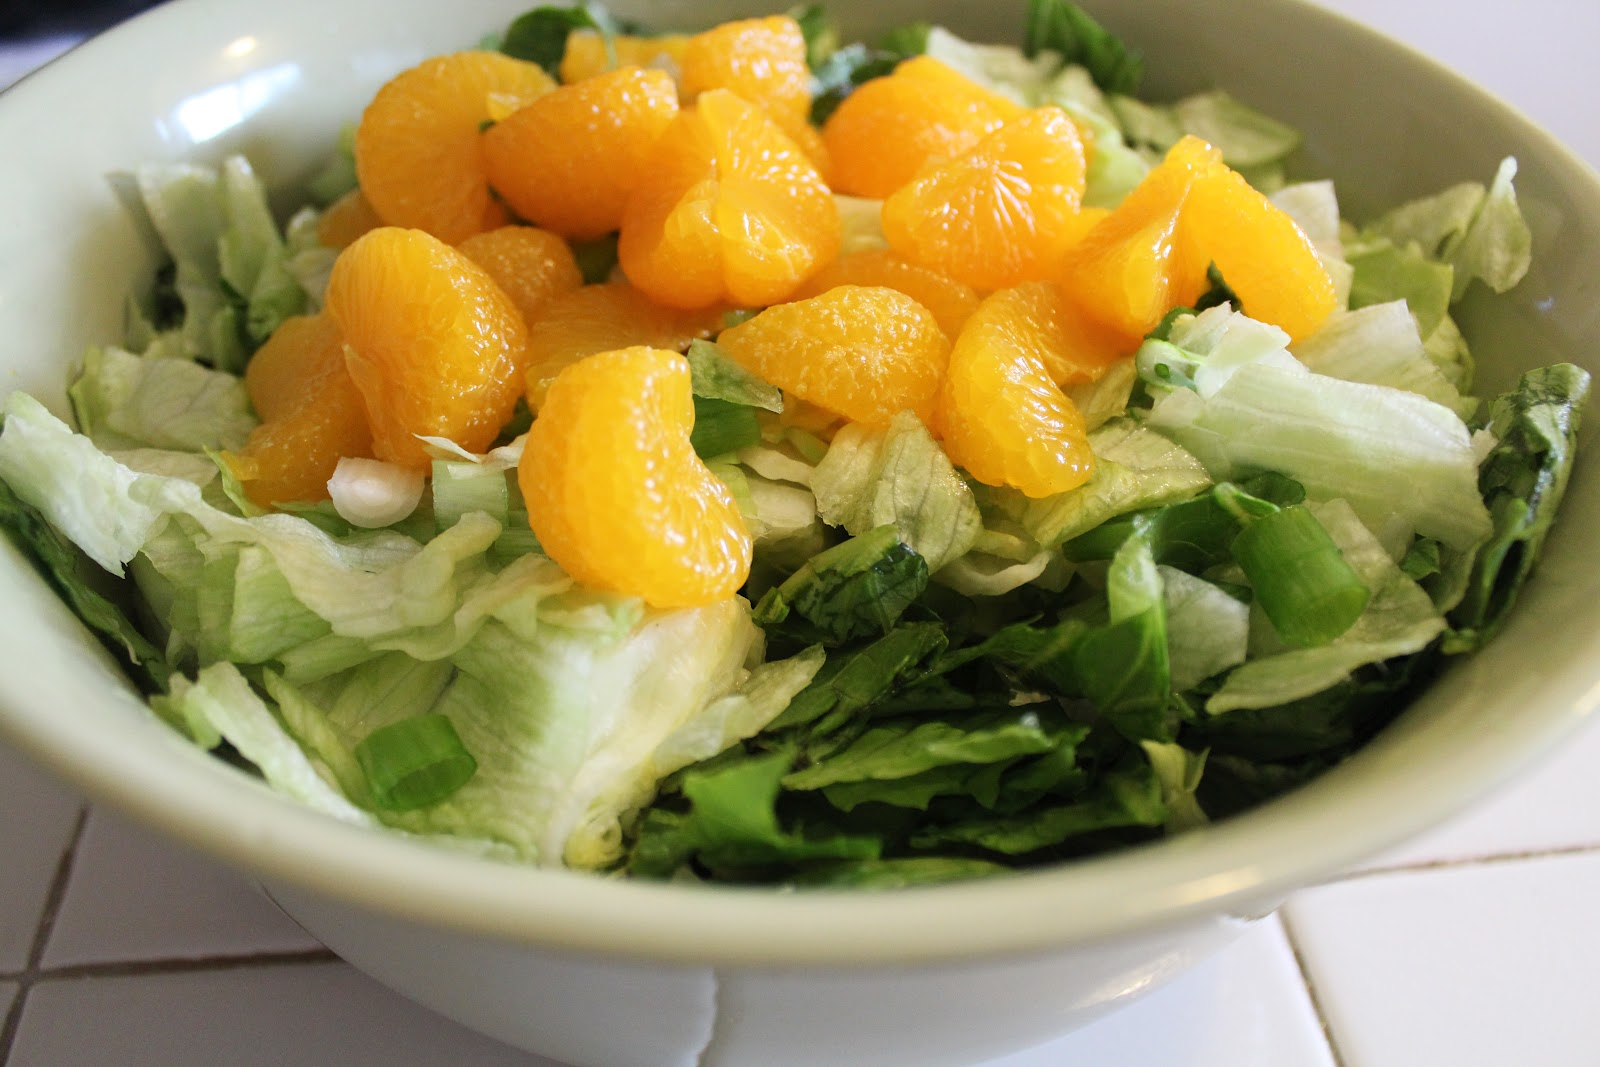 An easy recipe for Mandarin Orange and Spinach Pasta Salad loaded with goodness and topped with an easy 3 ingredient dressing!